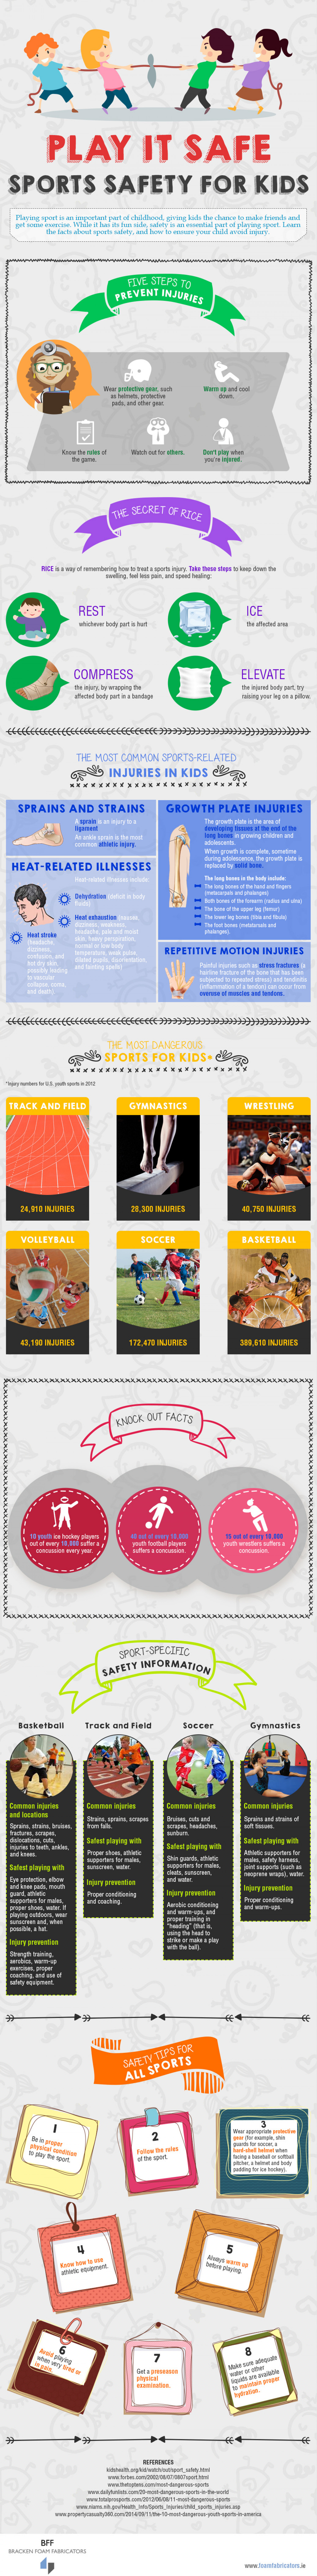 Play it Safe–Sports Safety for Kids Infographic